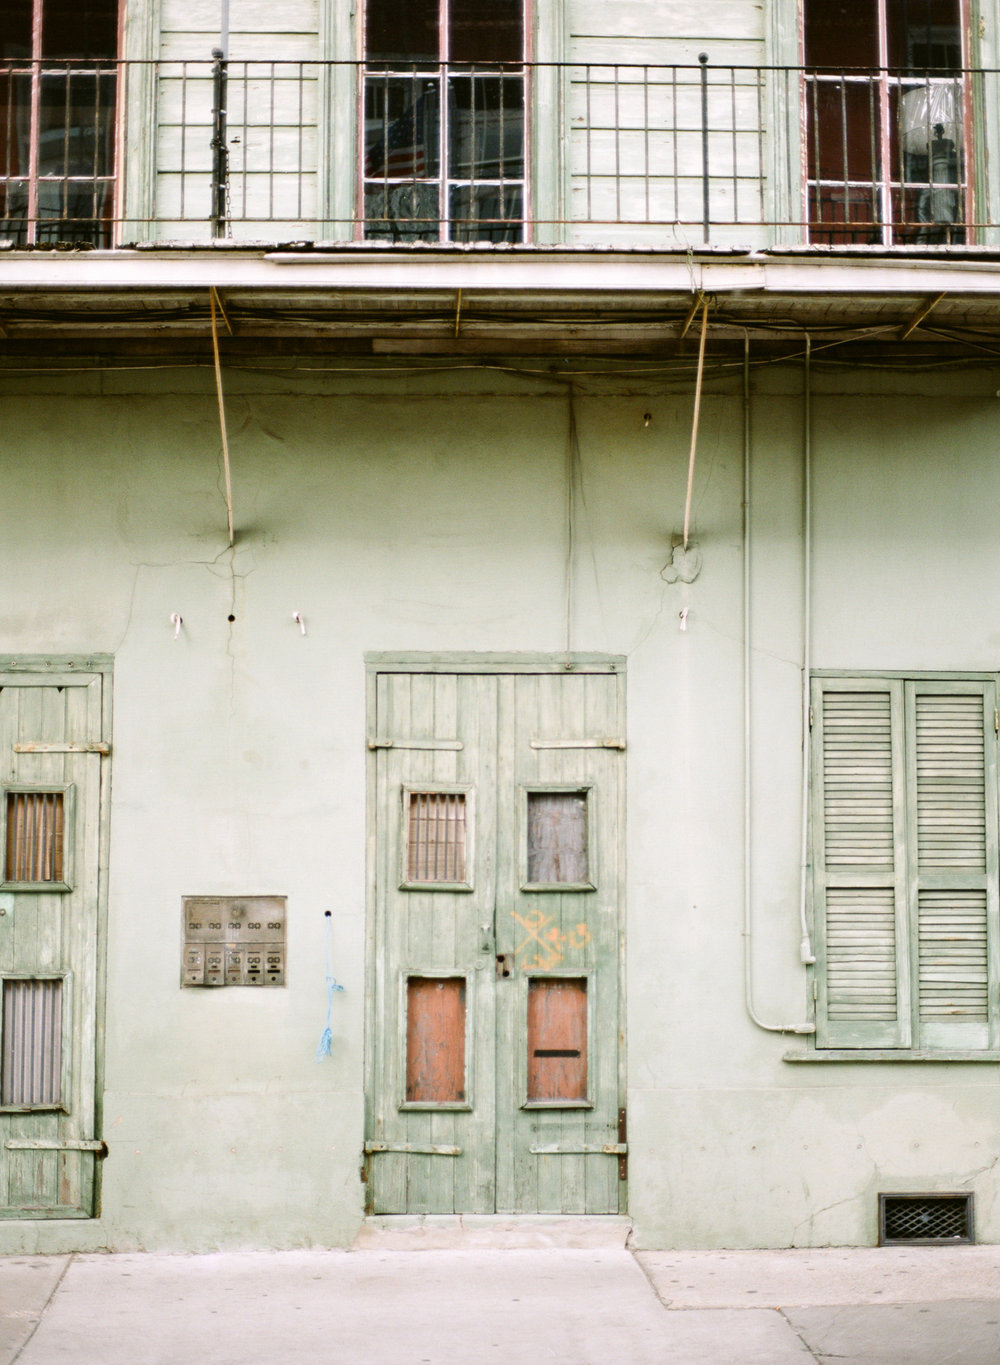 NEWORLEANS2013_©kristinmyoung_SquareLORes-9.jpg